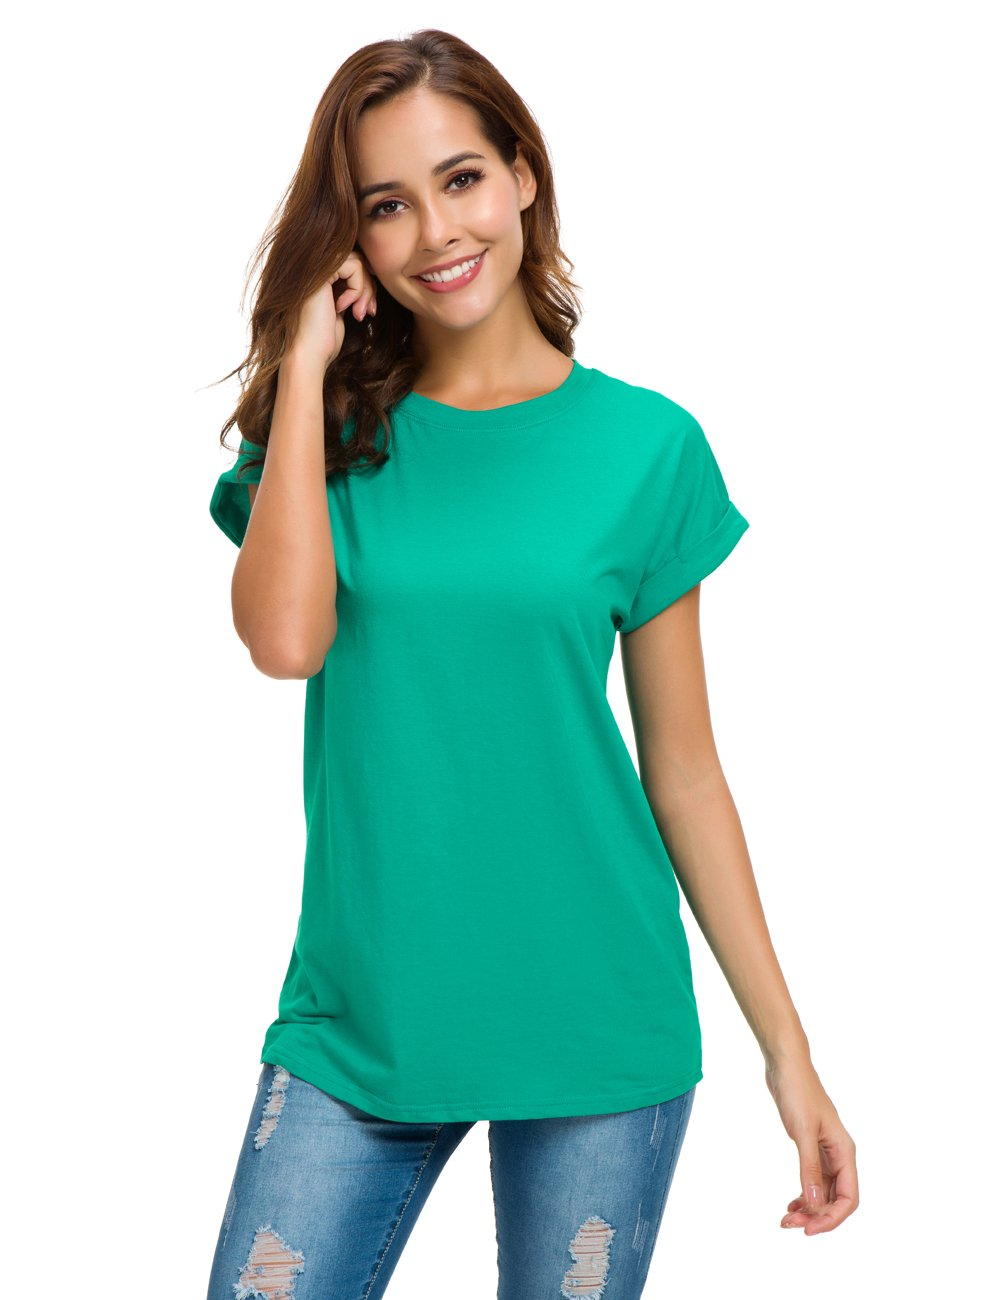 MSHING Women's Simple Crew Neck Plain Loose T-Shirt Summer Casual Tops